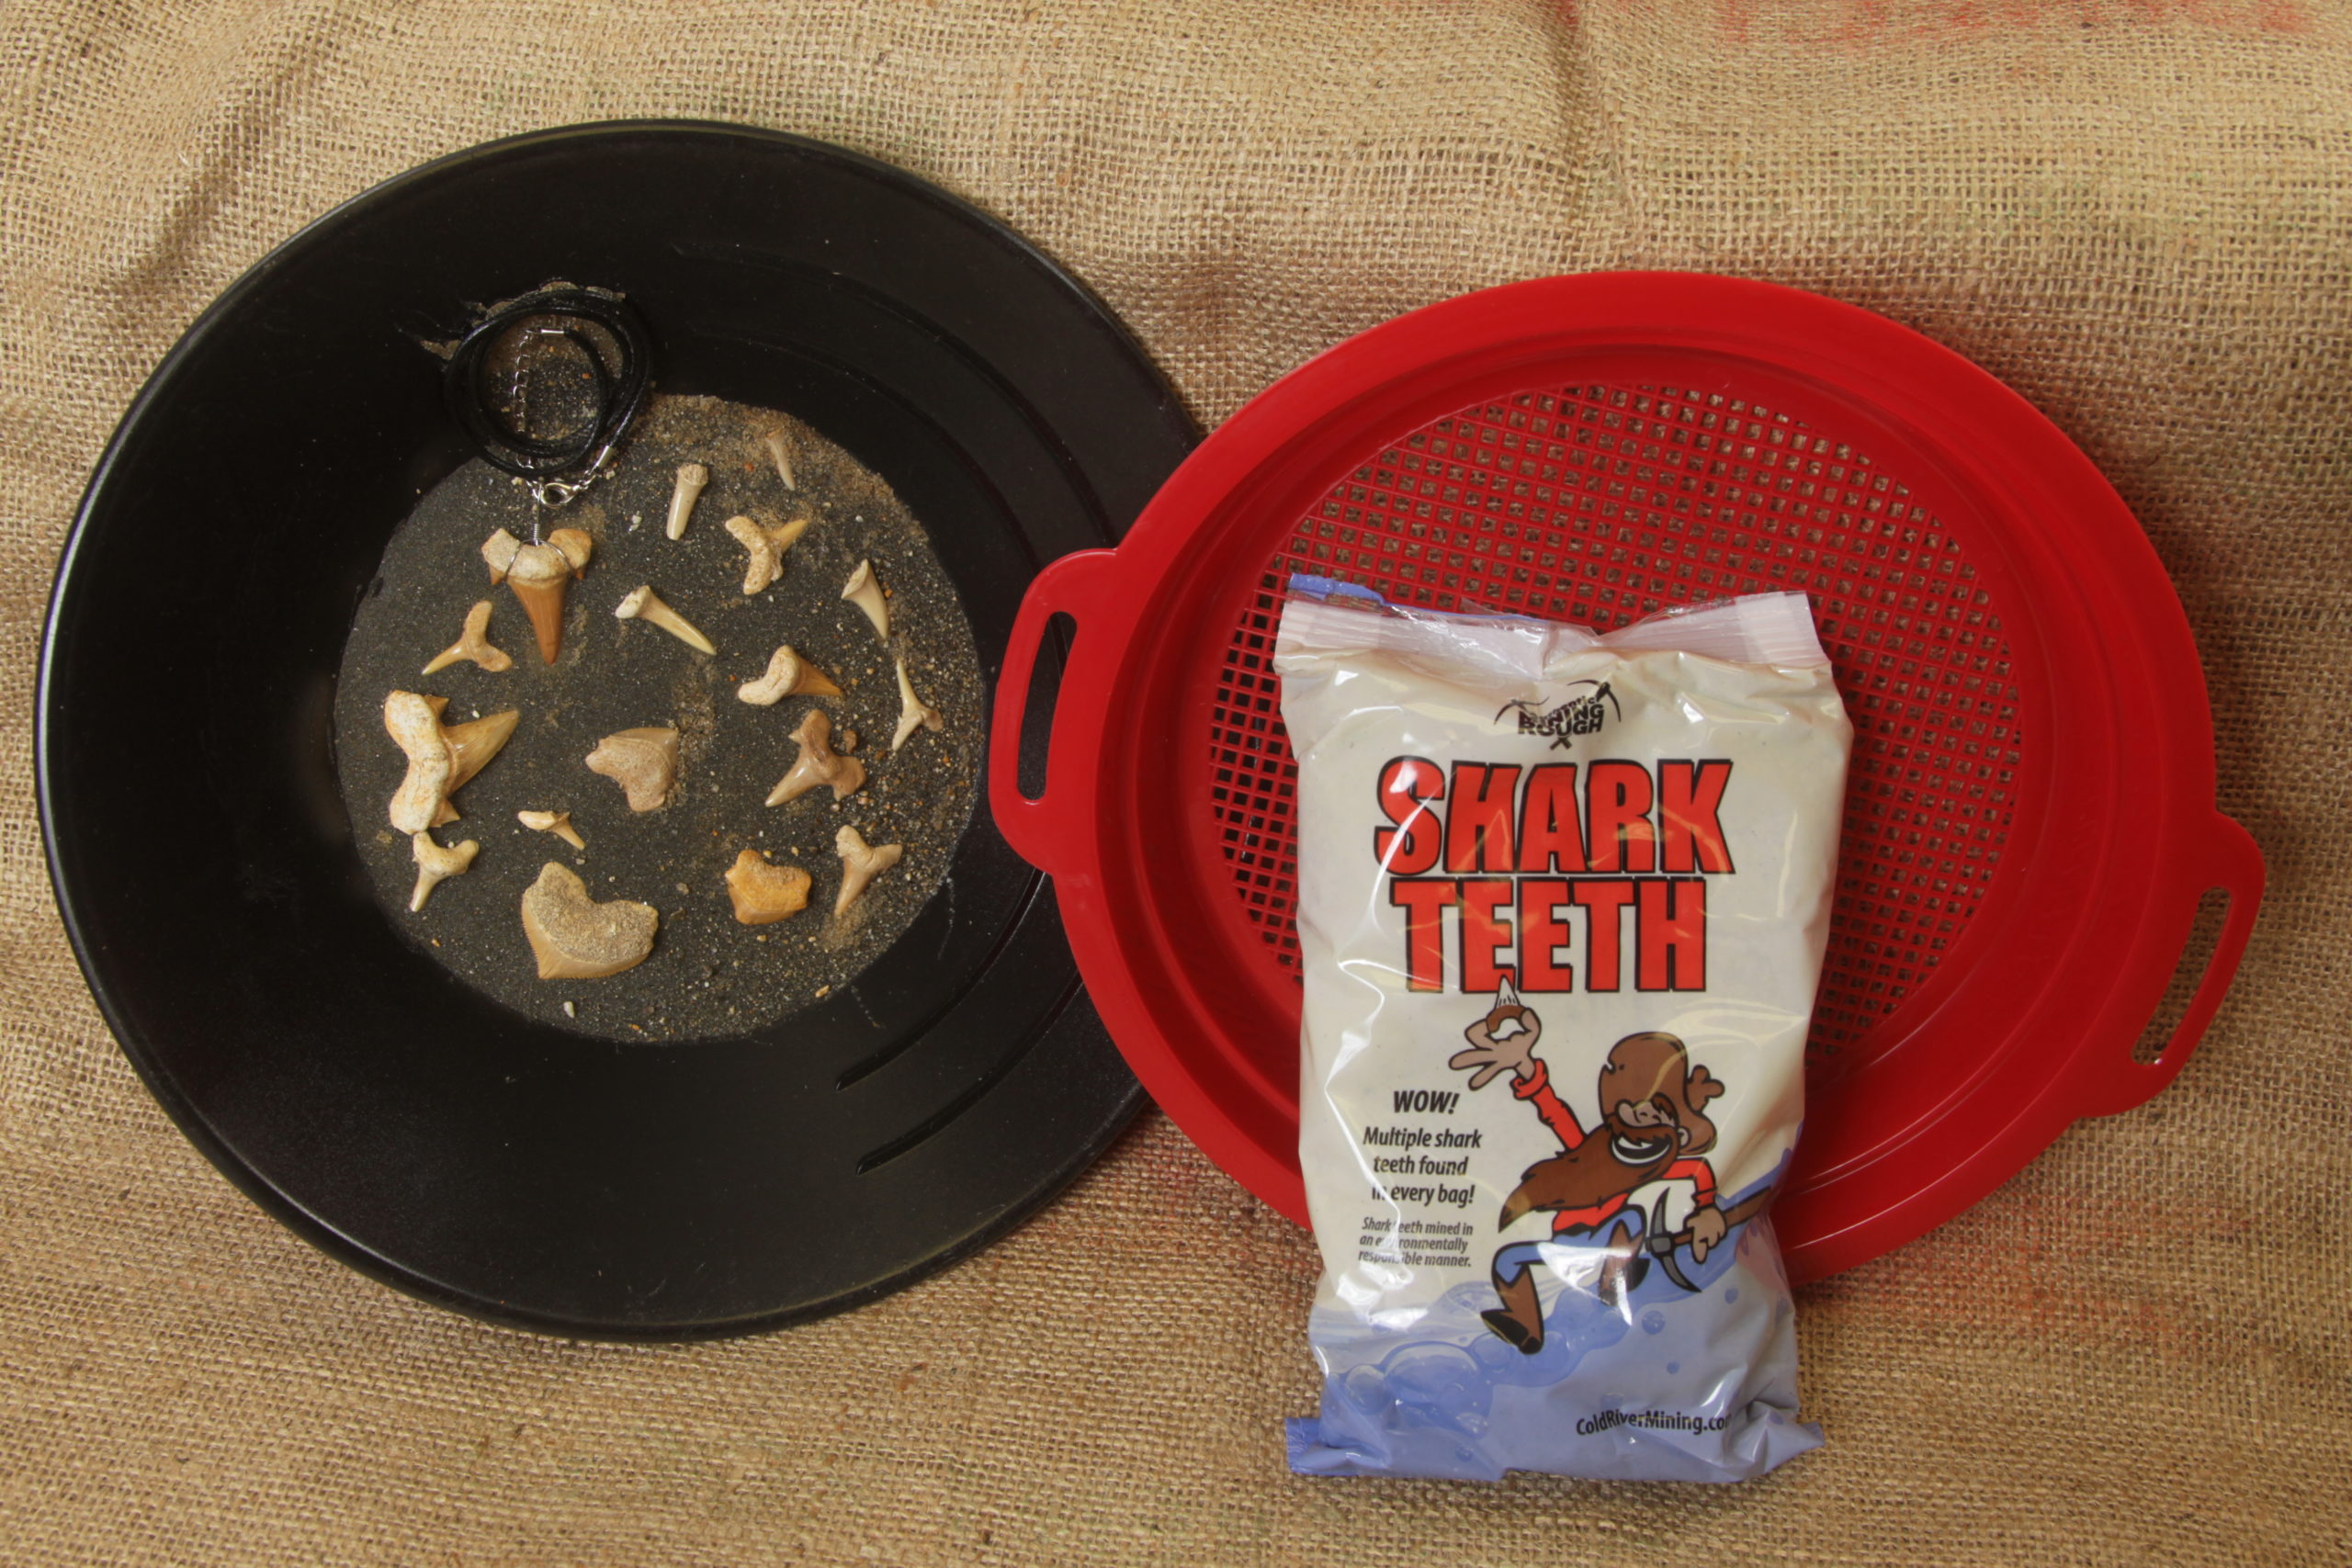 Small Shark Tooth bag fossil kit with sifter